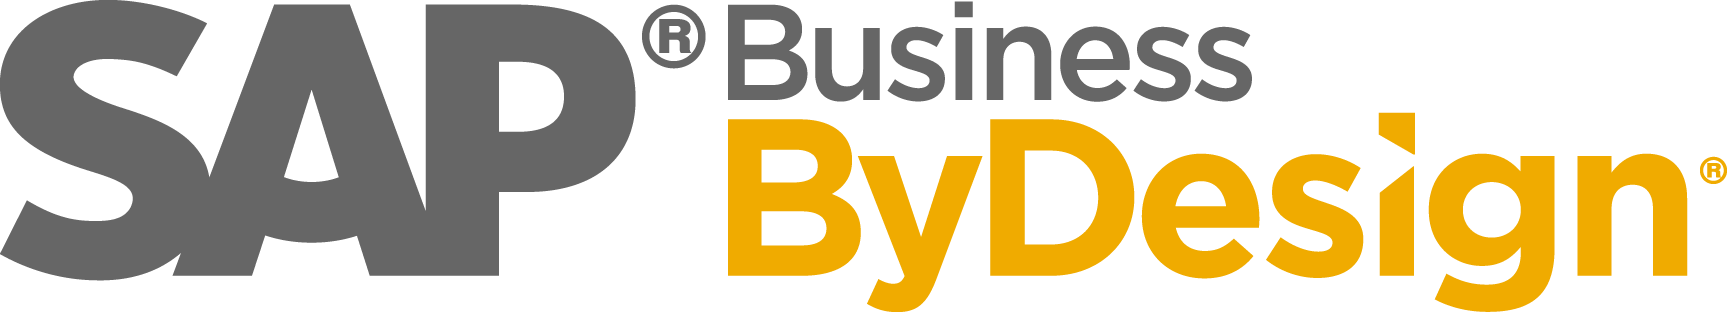 SAP Business ByDesign for Consumer Product and Retail businesses